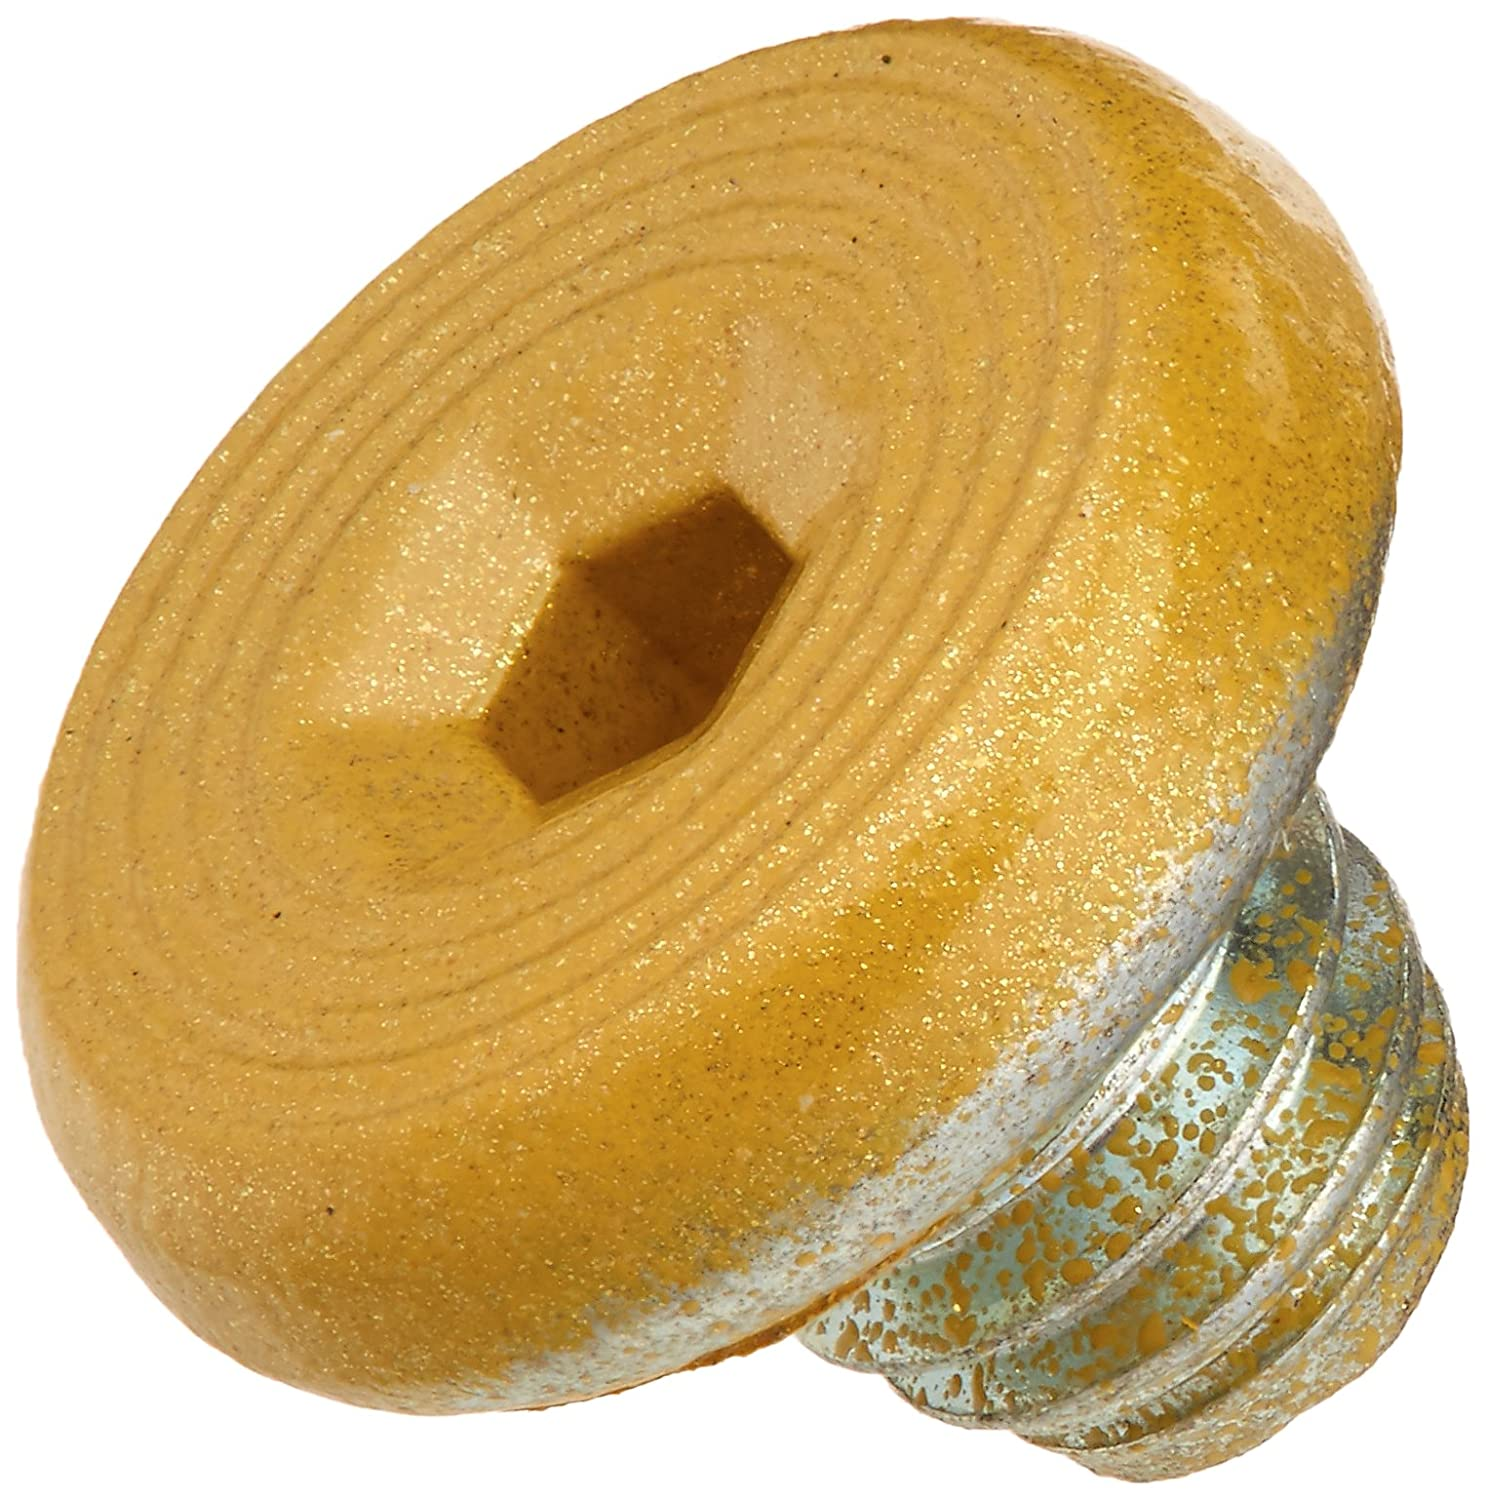 LCN 401031SB 4010-31 696 Sprayed Brass Cover Screw